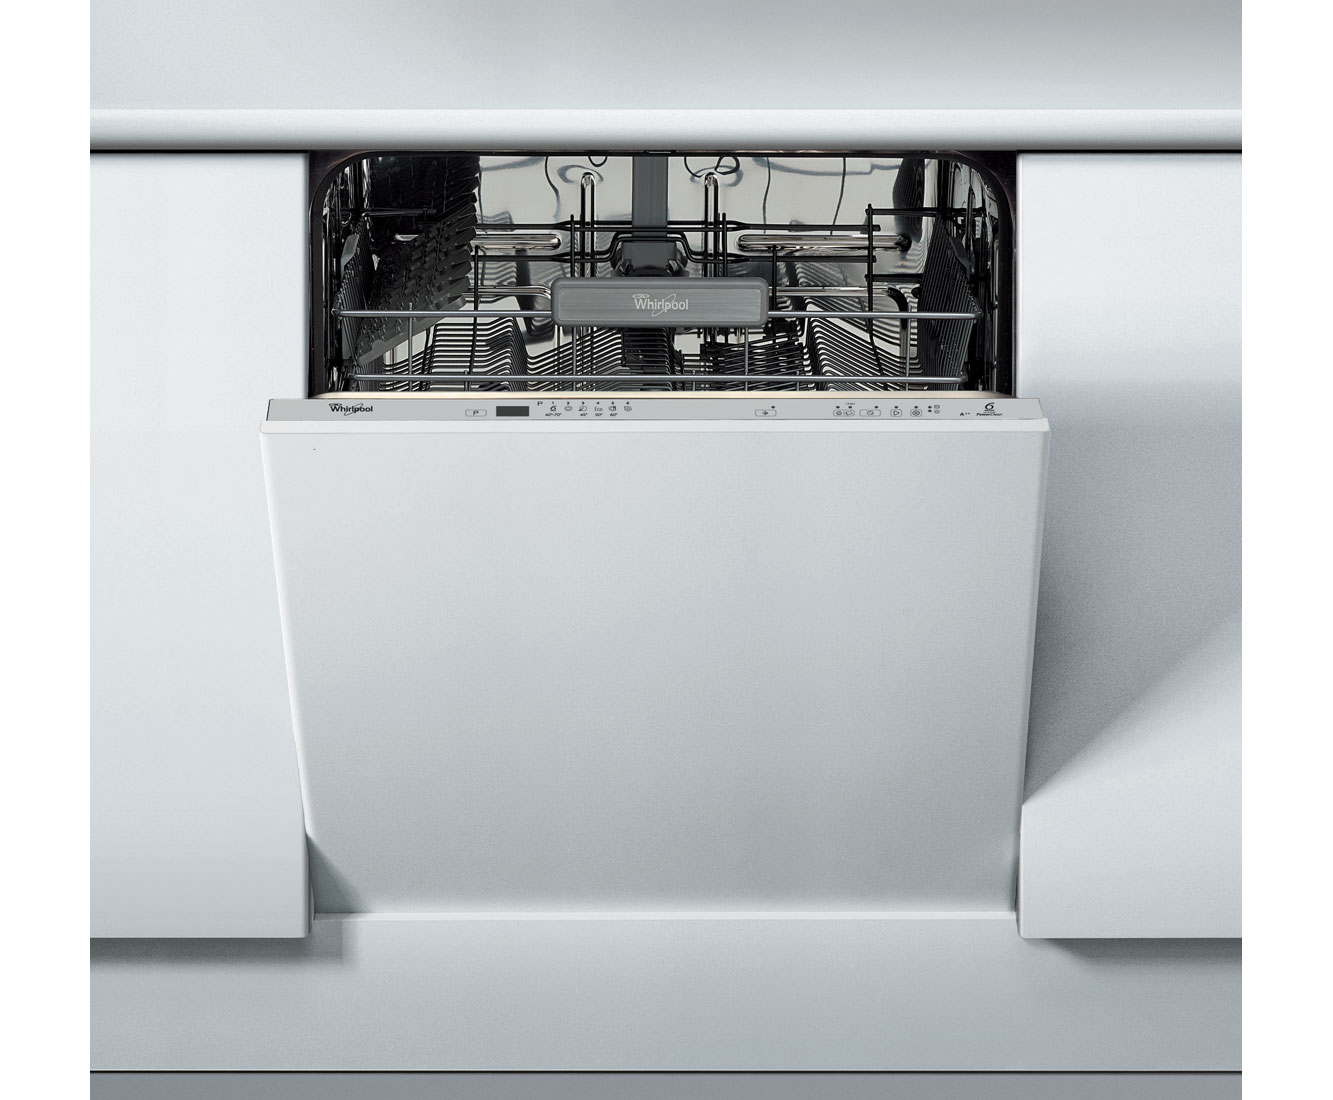 Whirlpool 6th Sense PowerClean ADG5010 Fully Integrated Standard Dishwasher - Silver